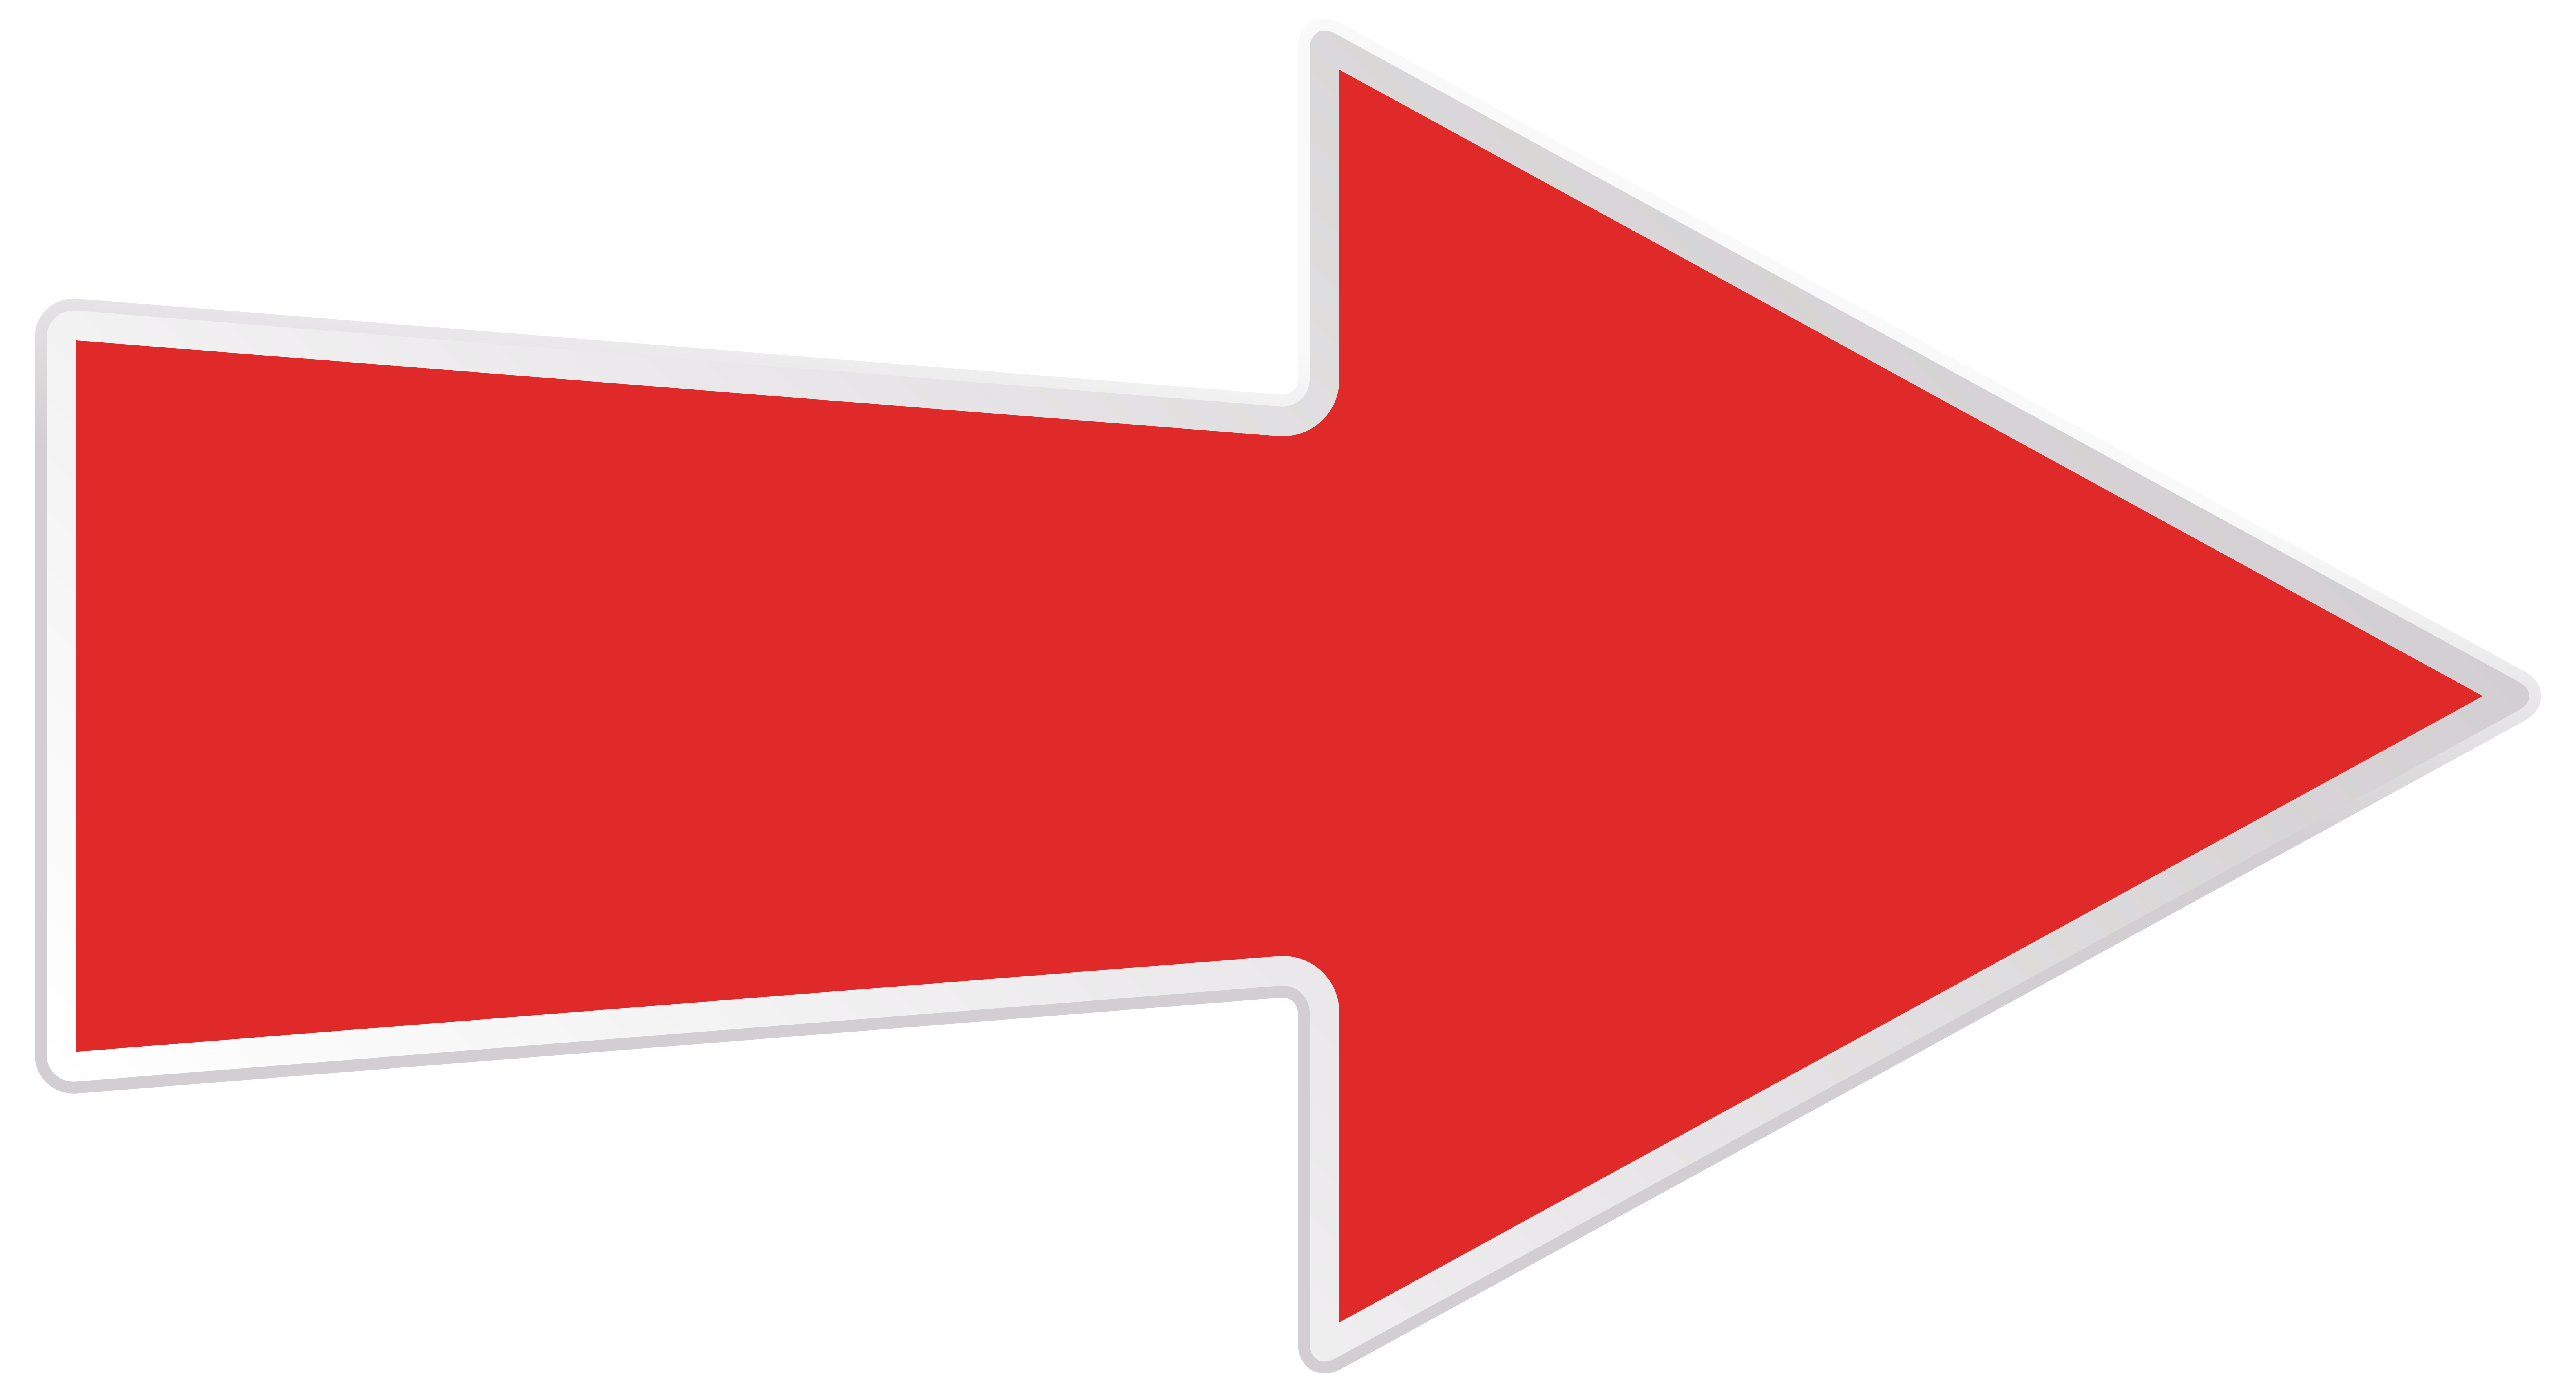 banner royalty free library Right arrow clipart. Red transparent png clip.